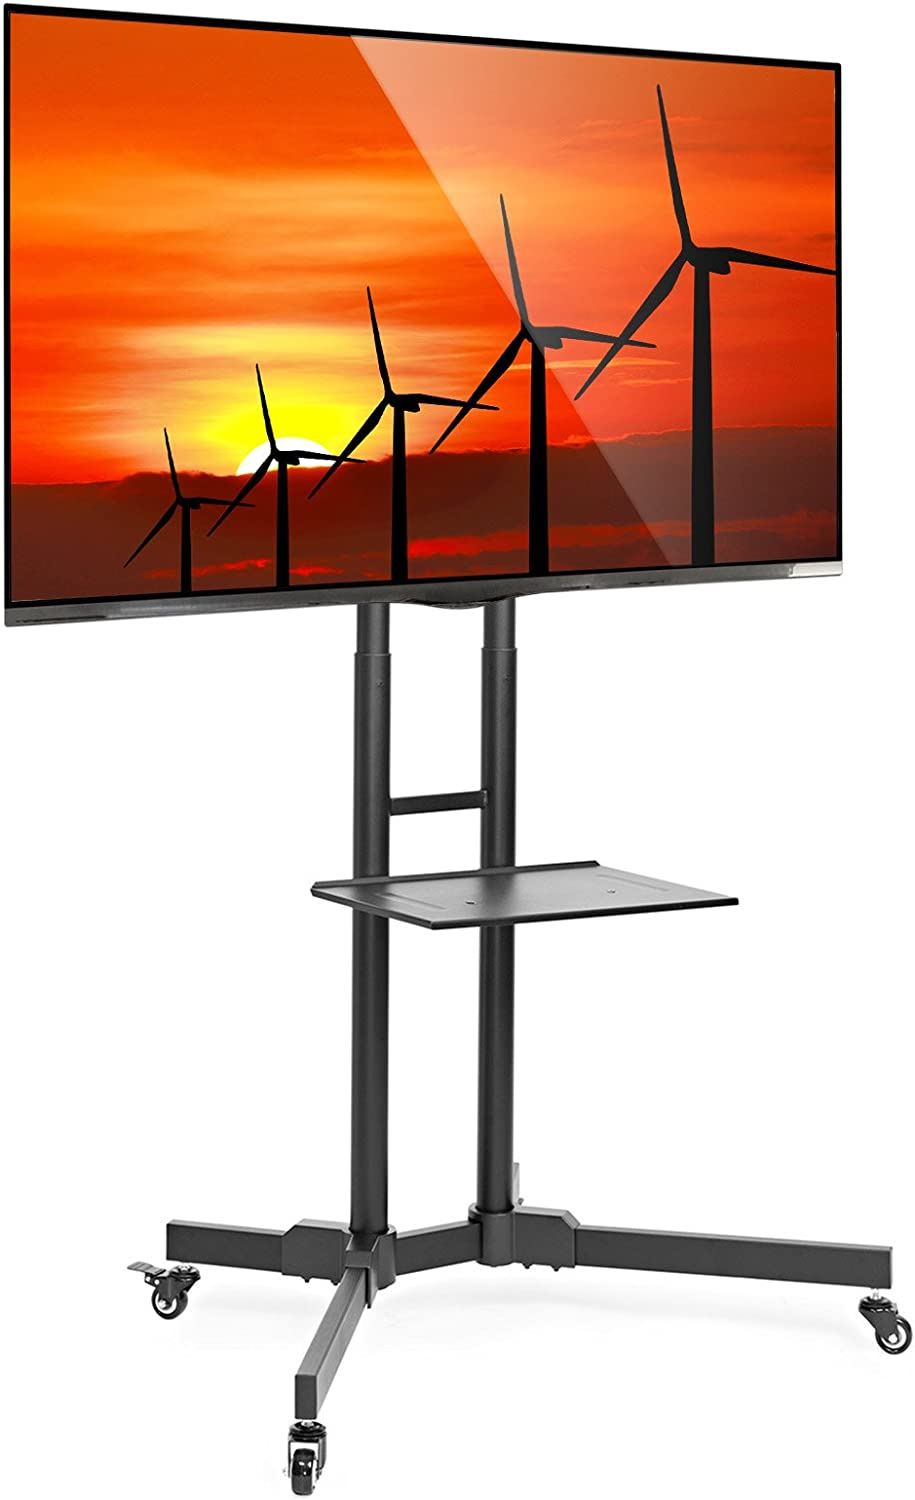 Mount Factory Rolling TV Stand Mobile TV Cart for 32-65 inch Plasma Screen, LED, LCD, OLED, Curved TV s – Mount Universal with Wheels